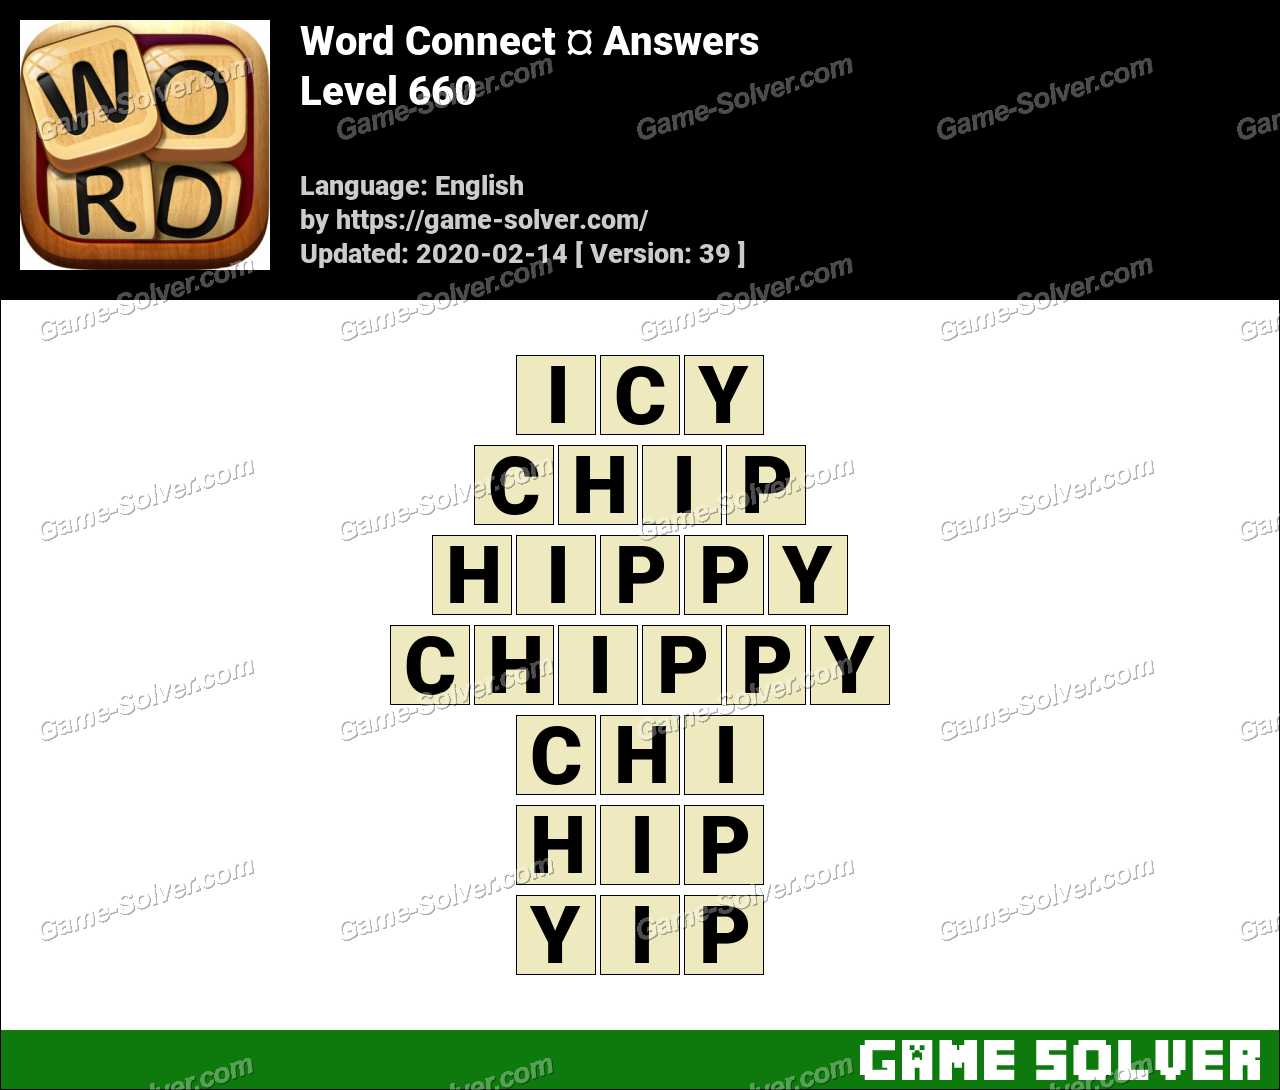 Word Connect Level 660 Answers